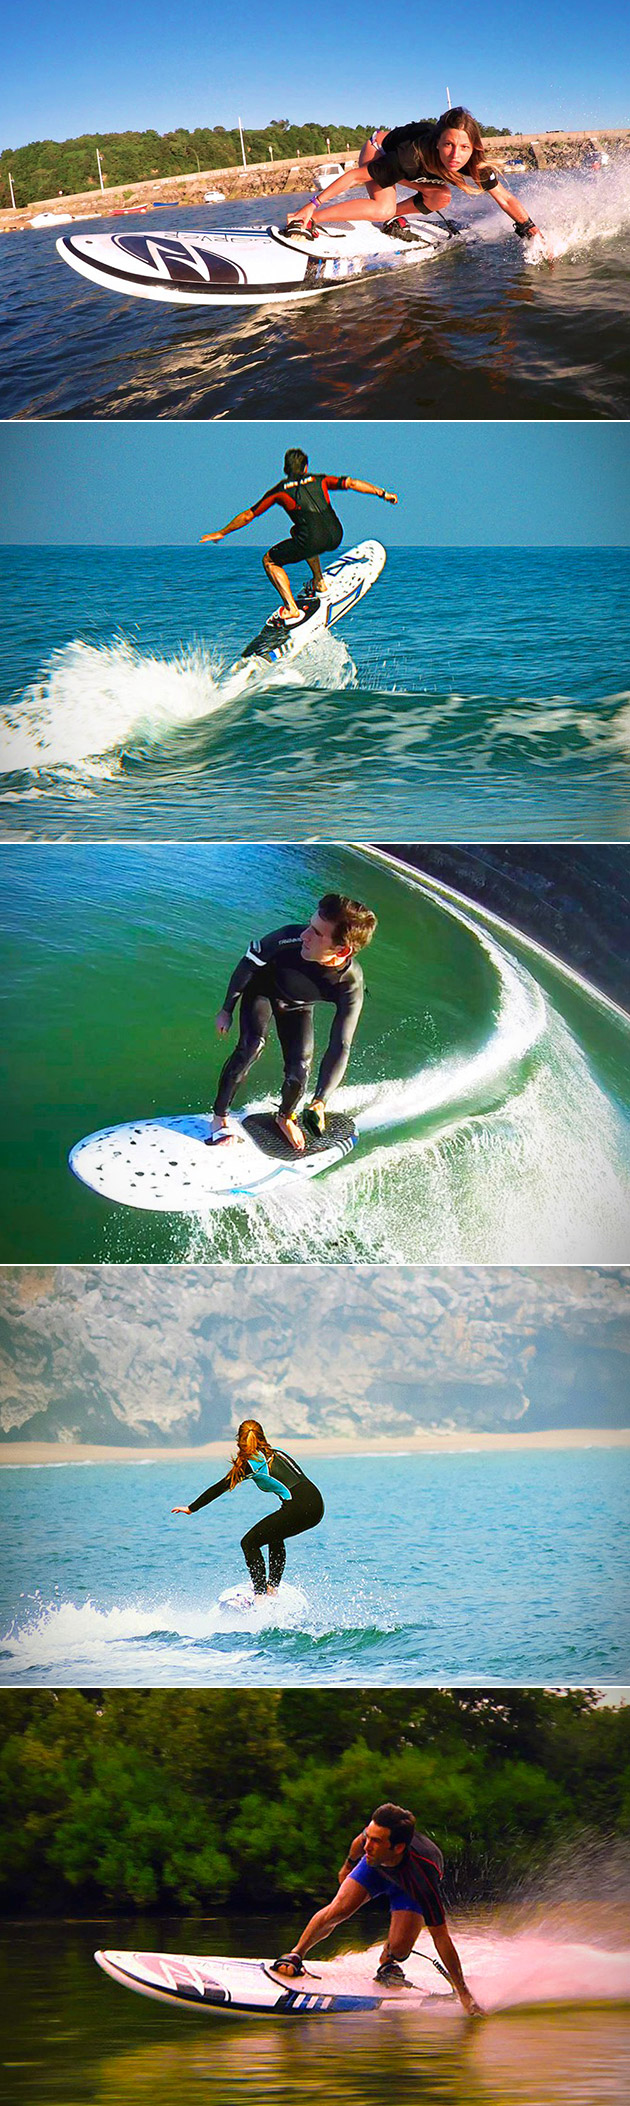 Onean Electric Jet Surfboard